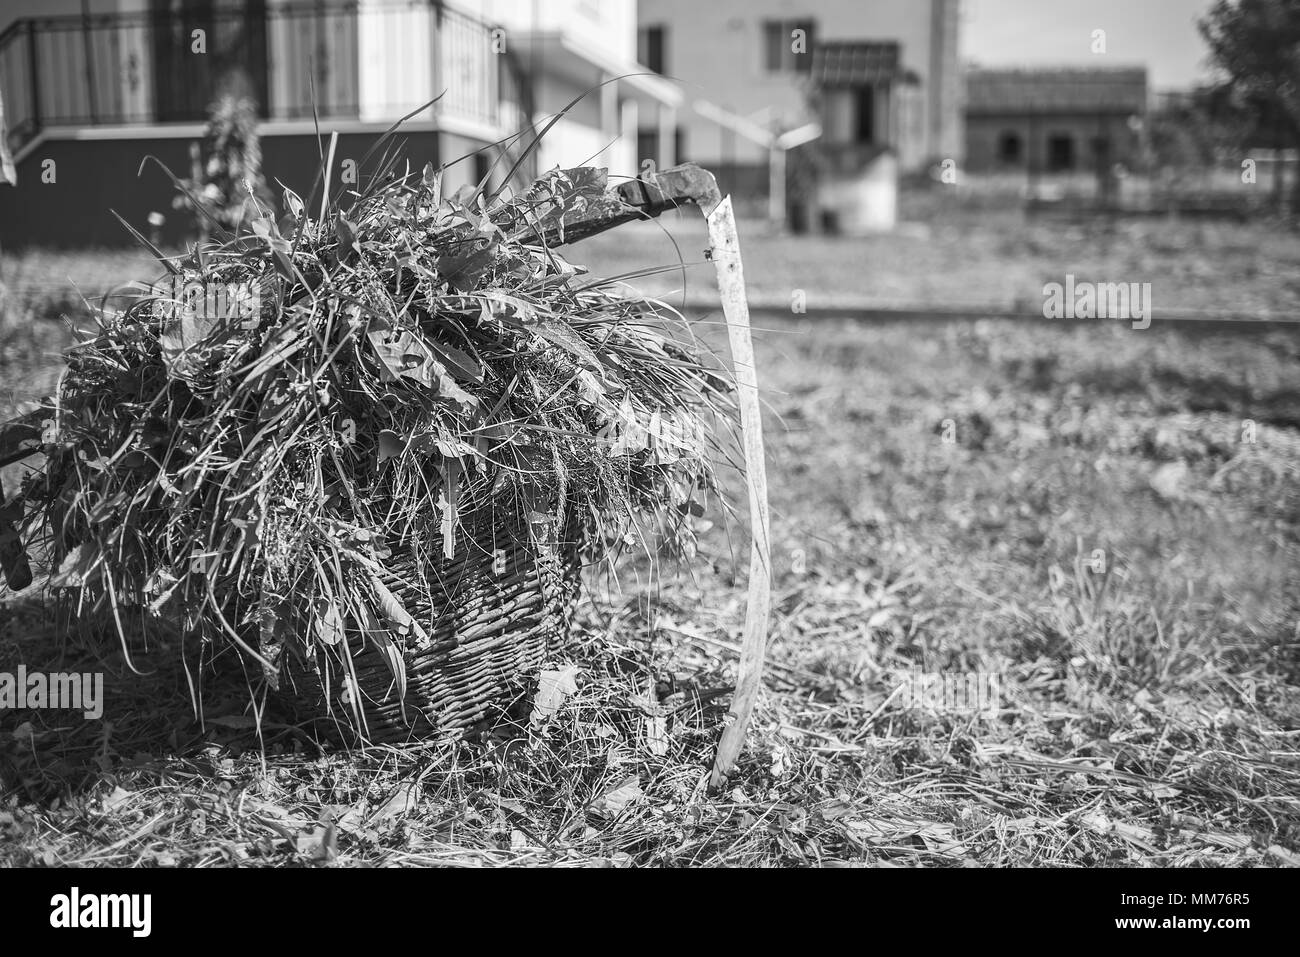 Fresh grass in a basket and outdated hand tool - scythe, monochrome effect, monochrome effect - Stock Image